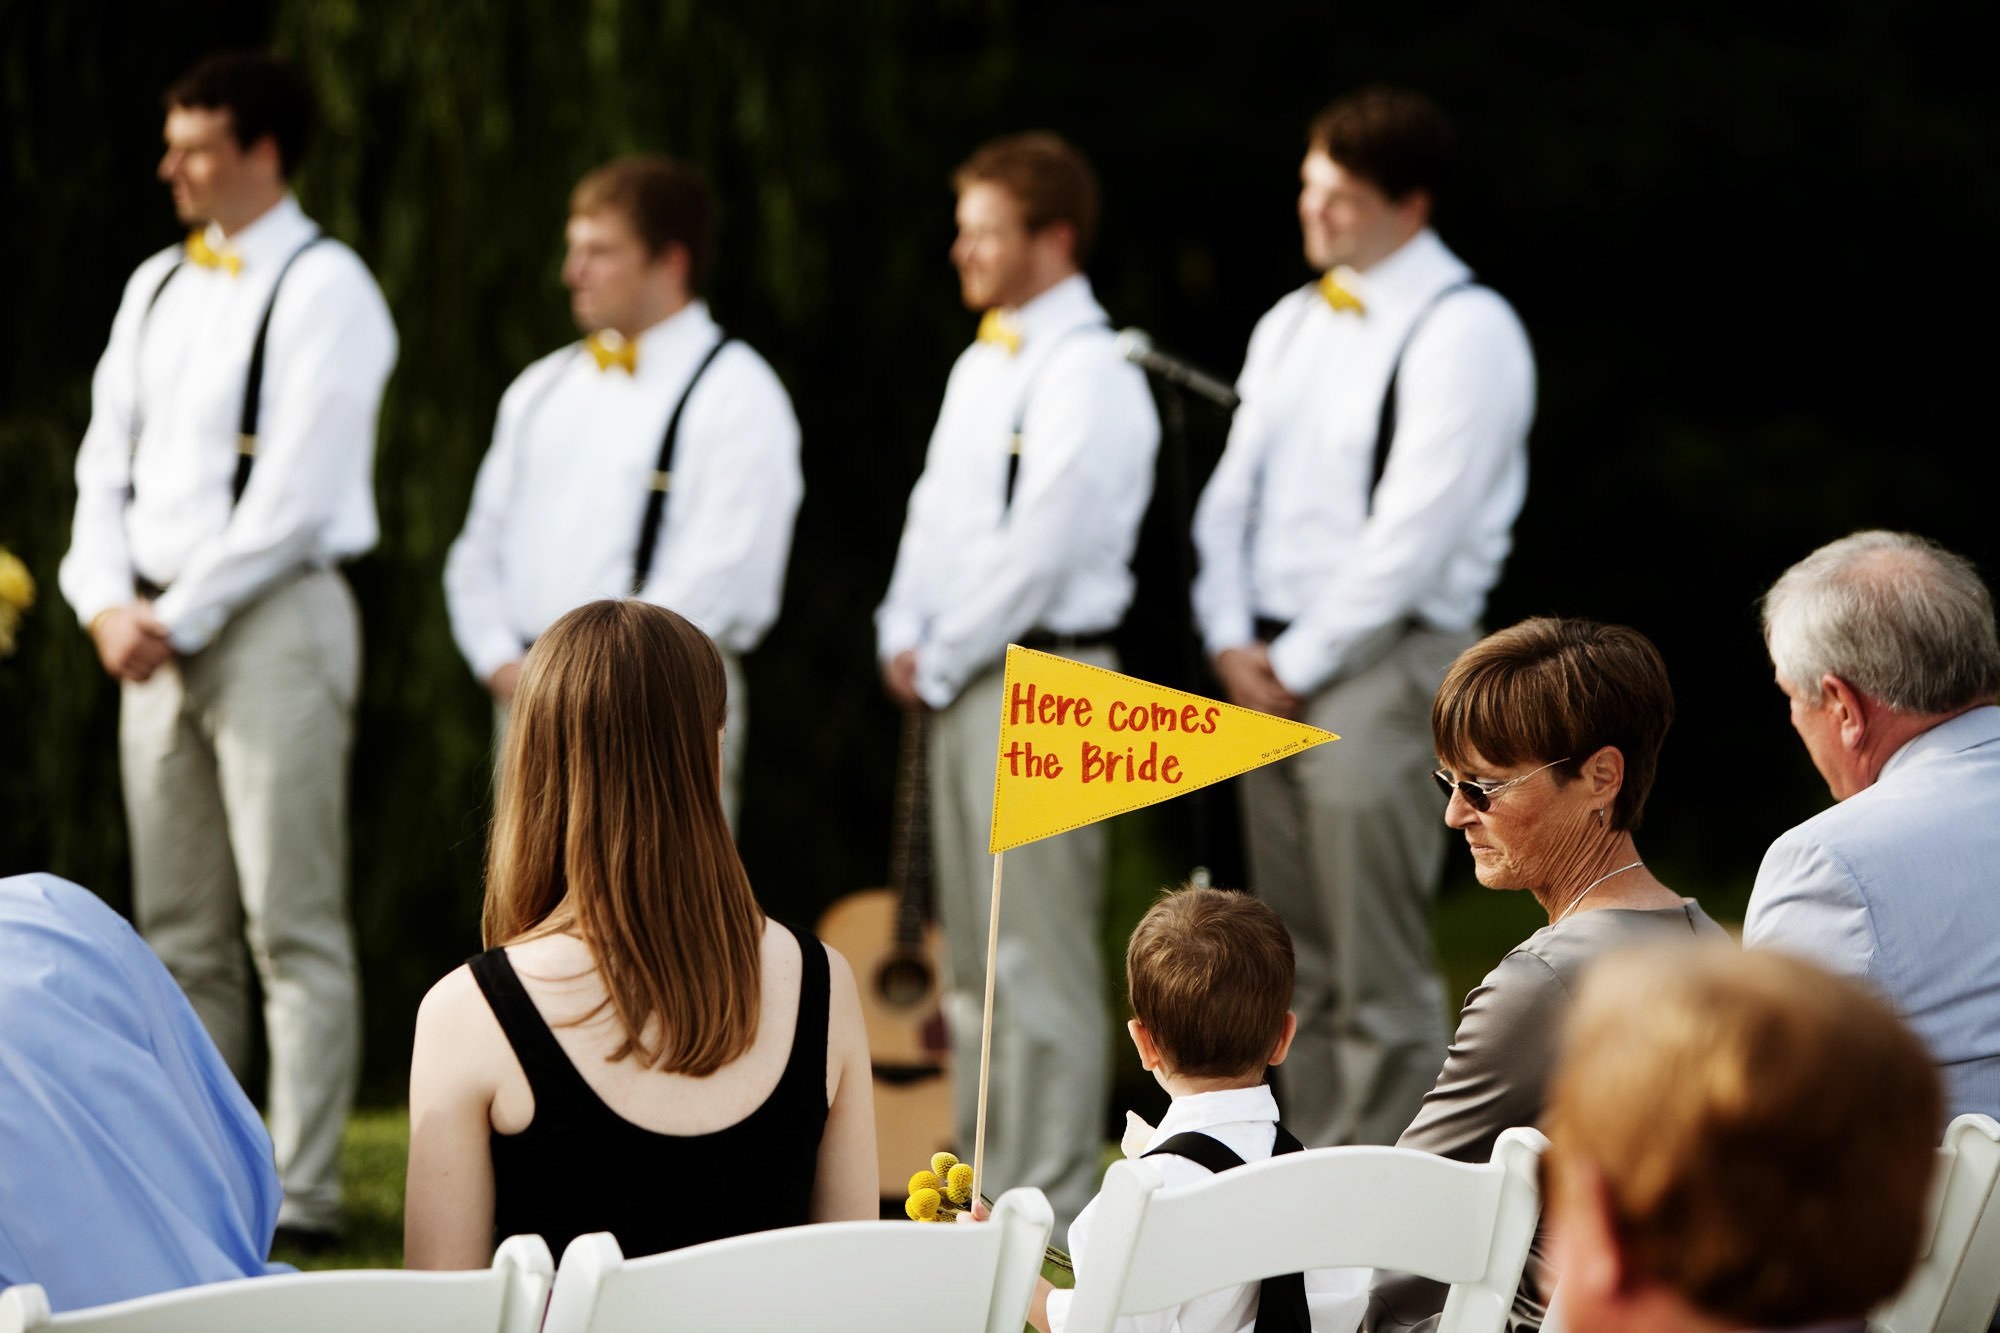 The ring bearer holds up a sign during the wedding reception at Sunset Hills Vineyard.